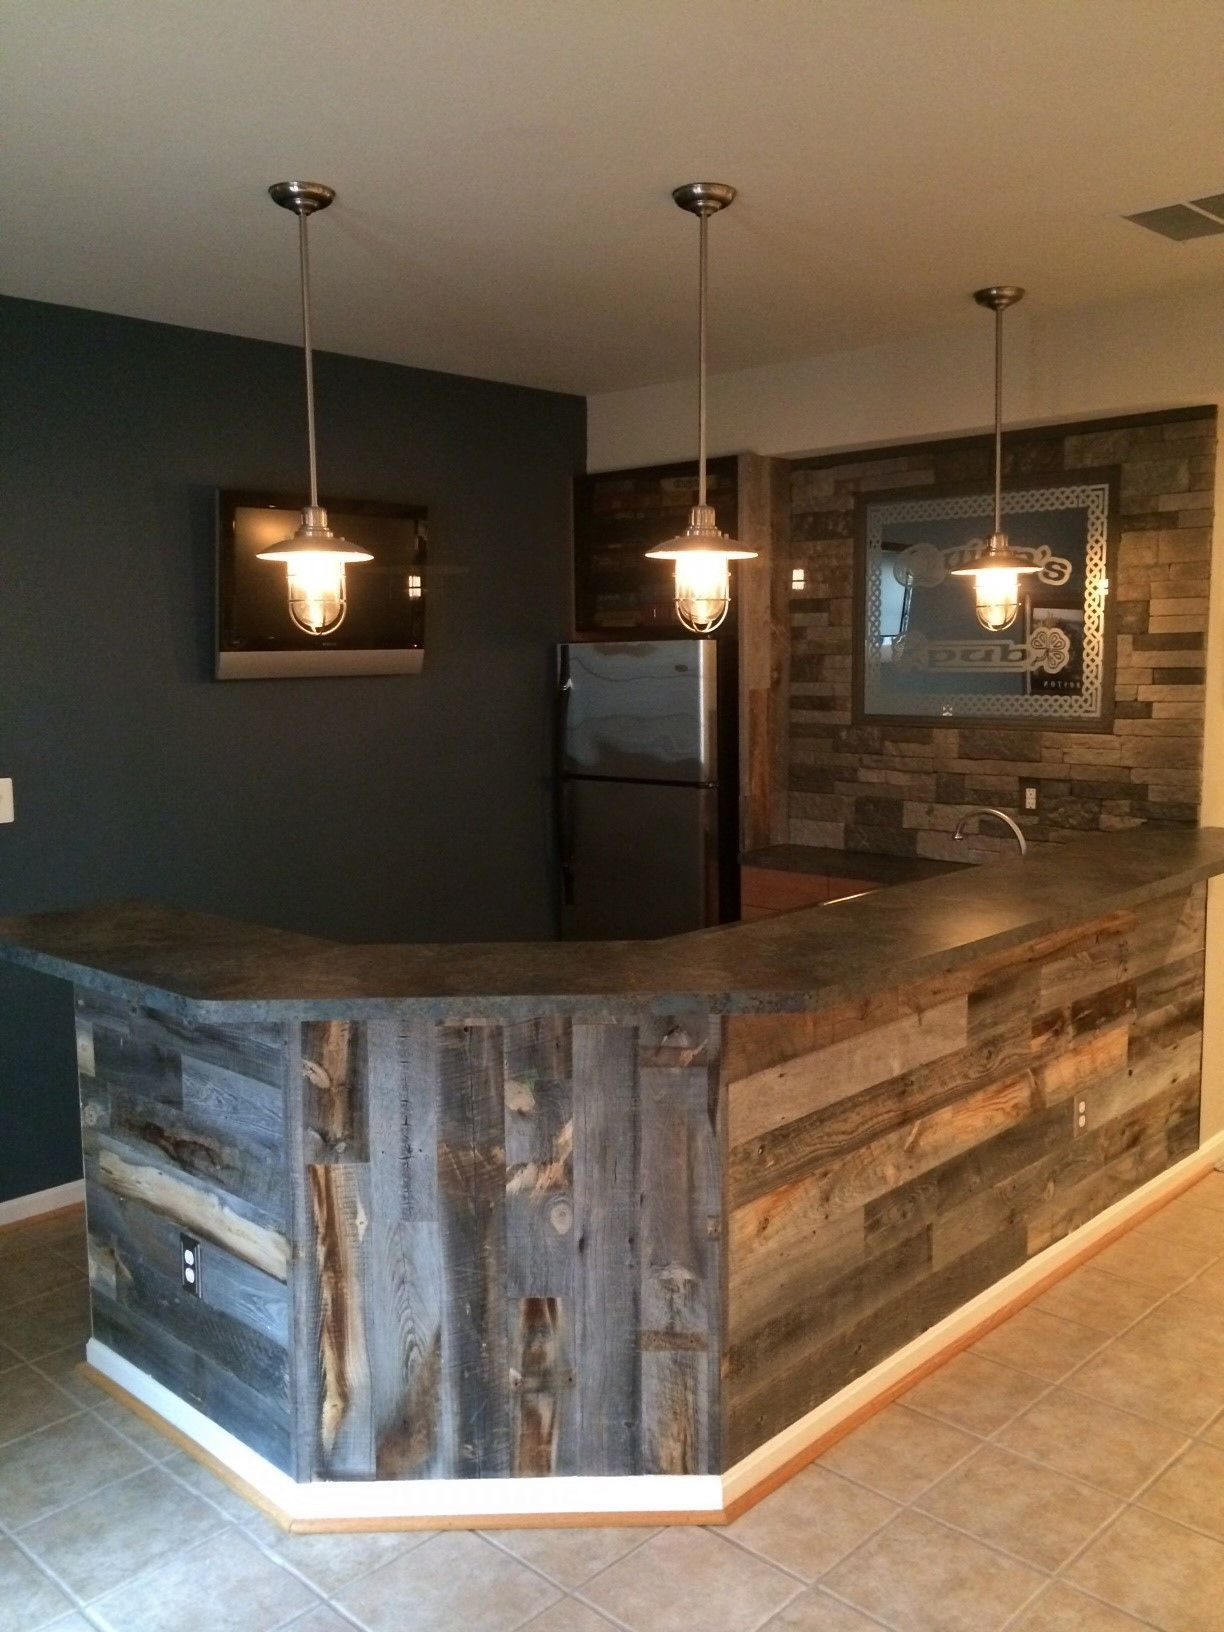 Merveilleux Stikwood Peel And Stik Wood Wall Planking Future Basement Bar